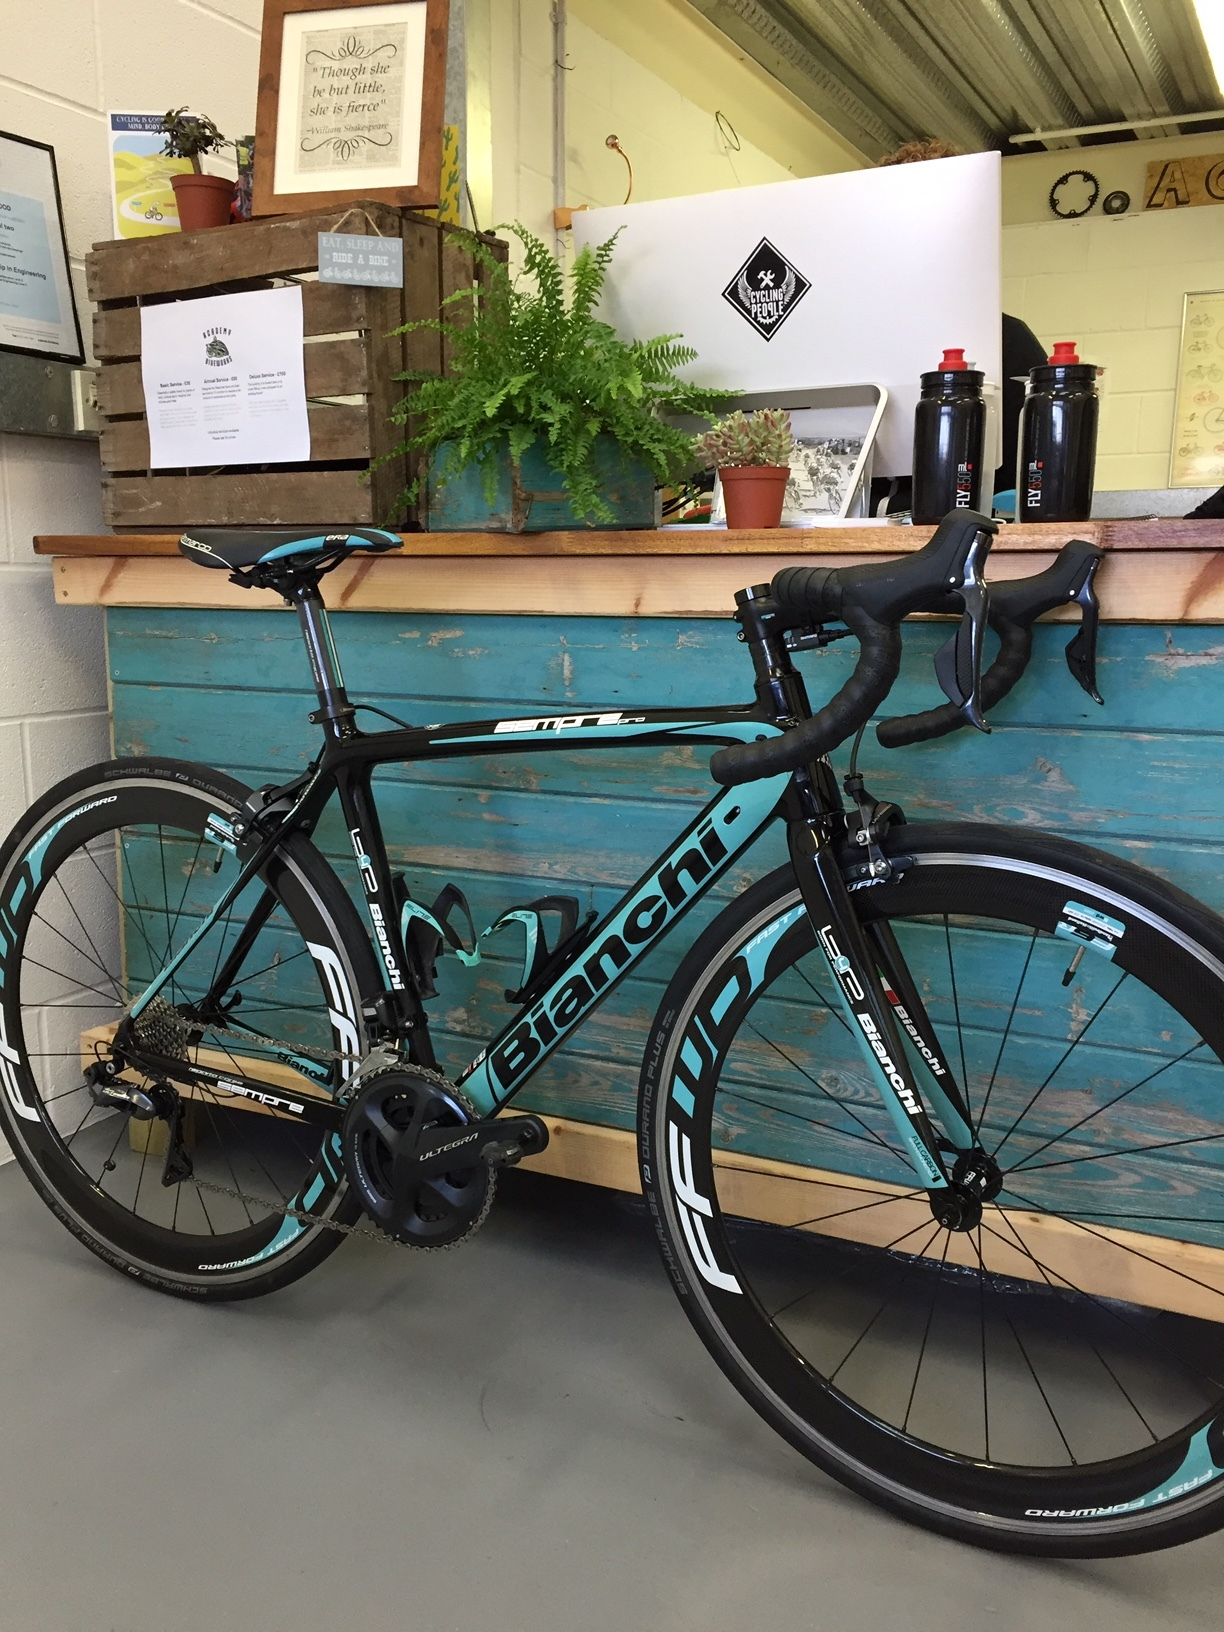 Our recent Di2 install for a customer of ours! The Di2 upgrade was a treat for himself (and his best bike). If you're thinking of upgrading to Di2 pop in with your bike and we'll go through your options as well as answer any questions you may have.